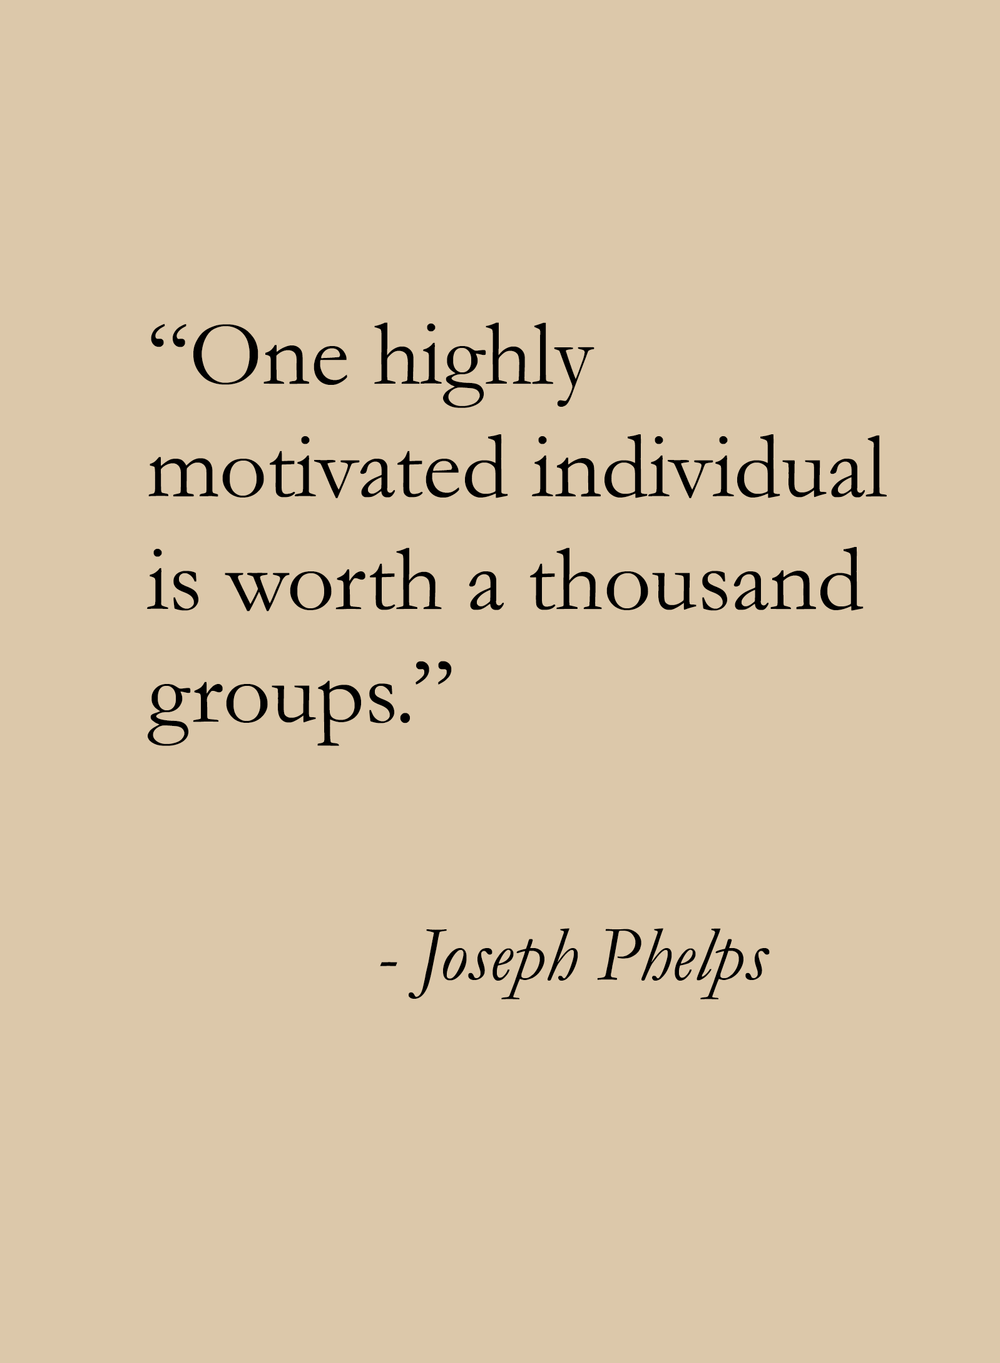 phelps-quote.png